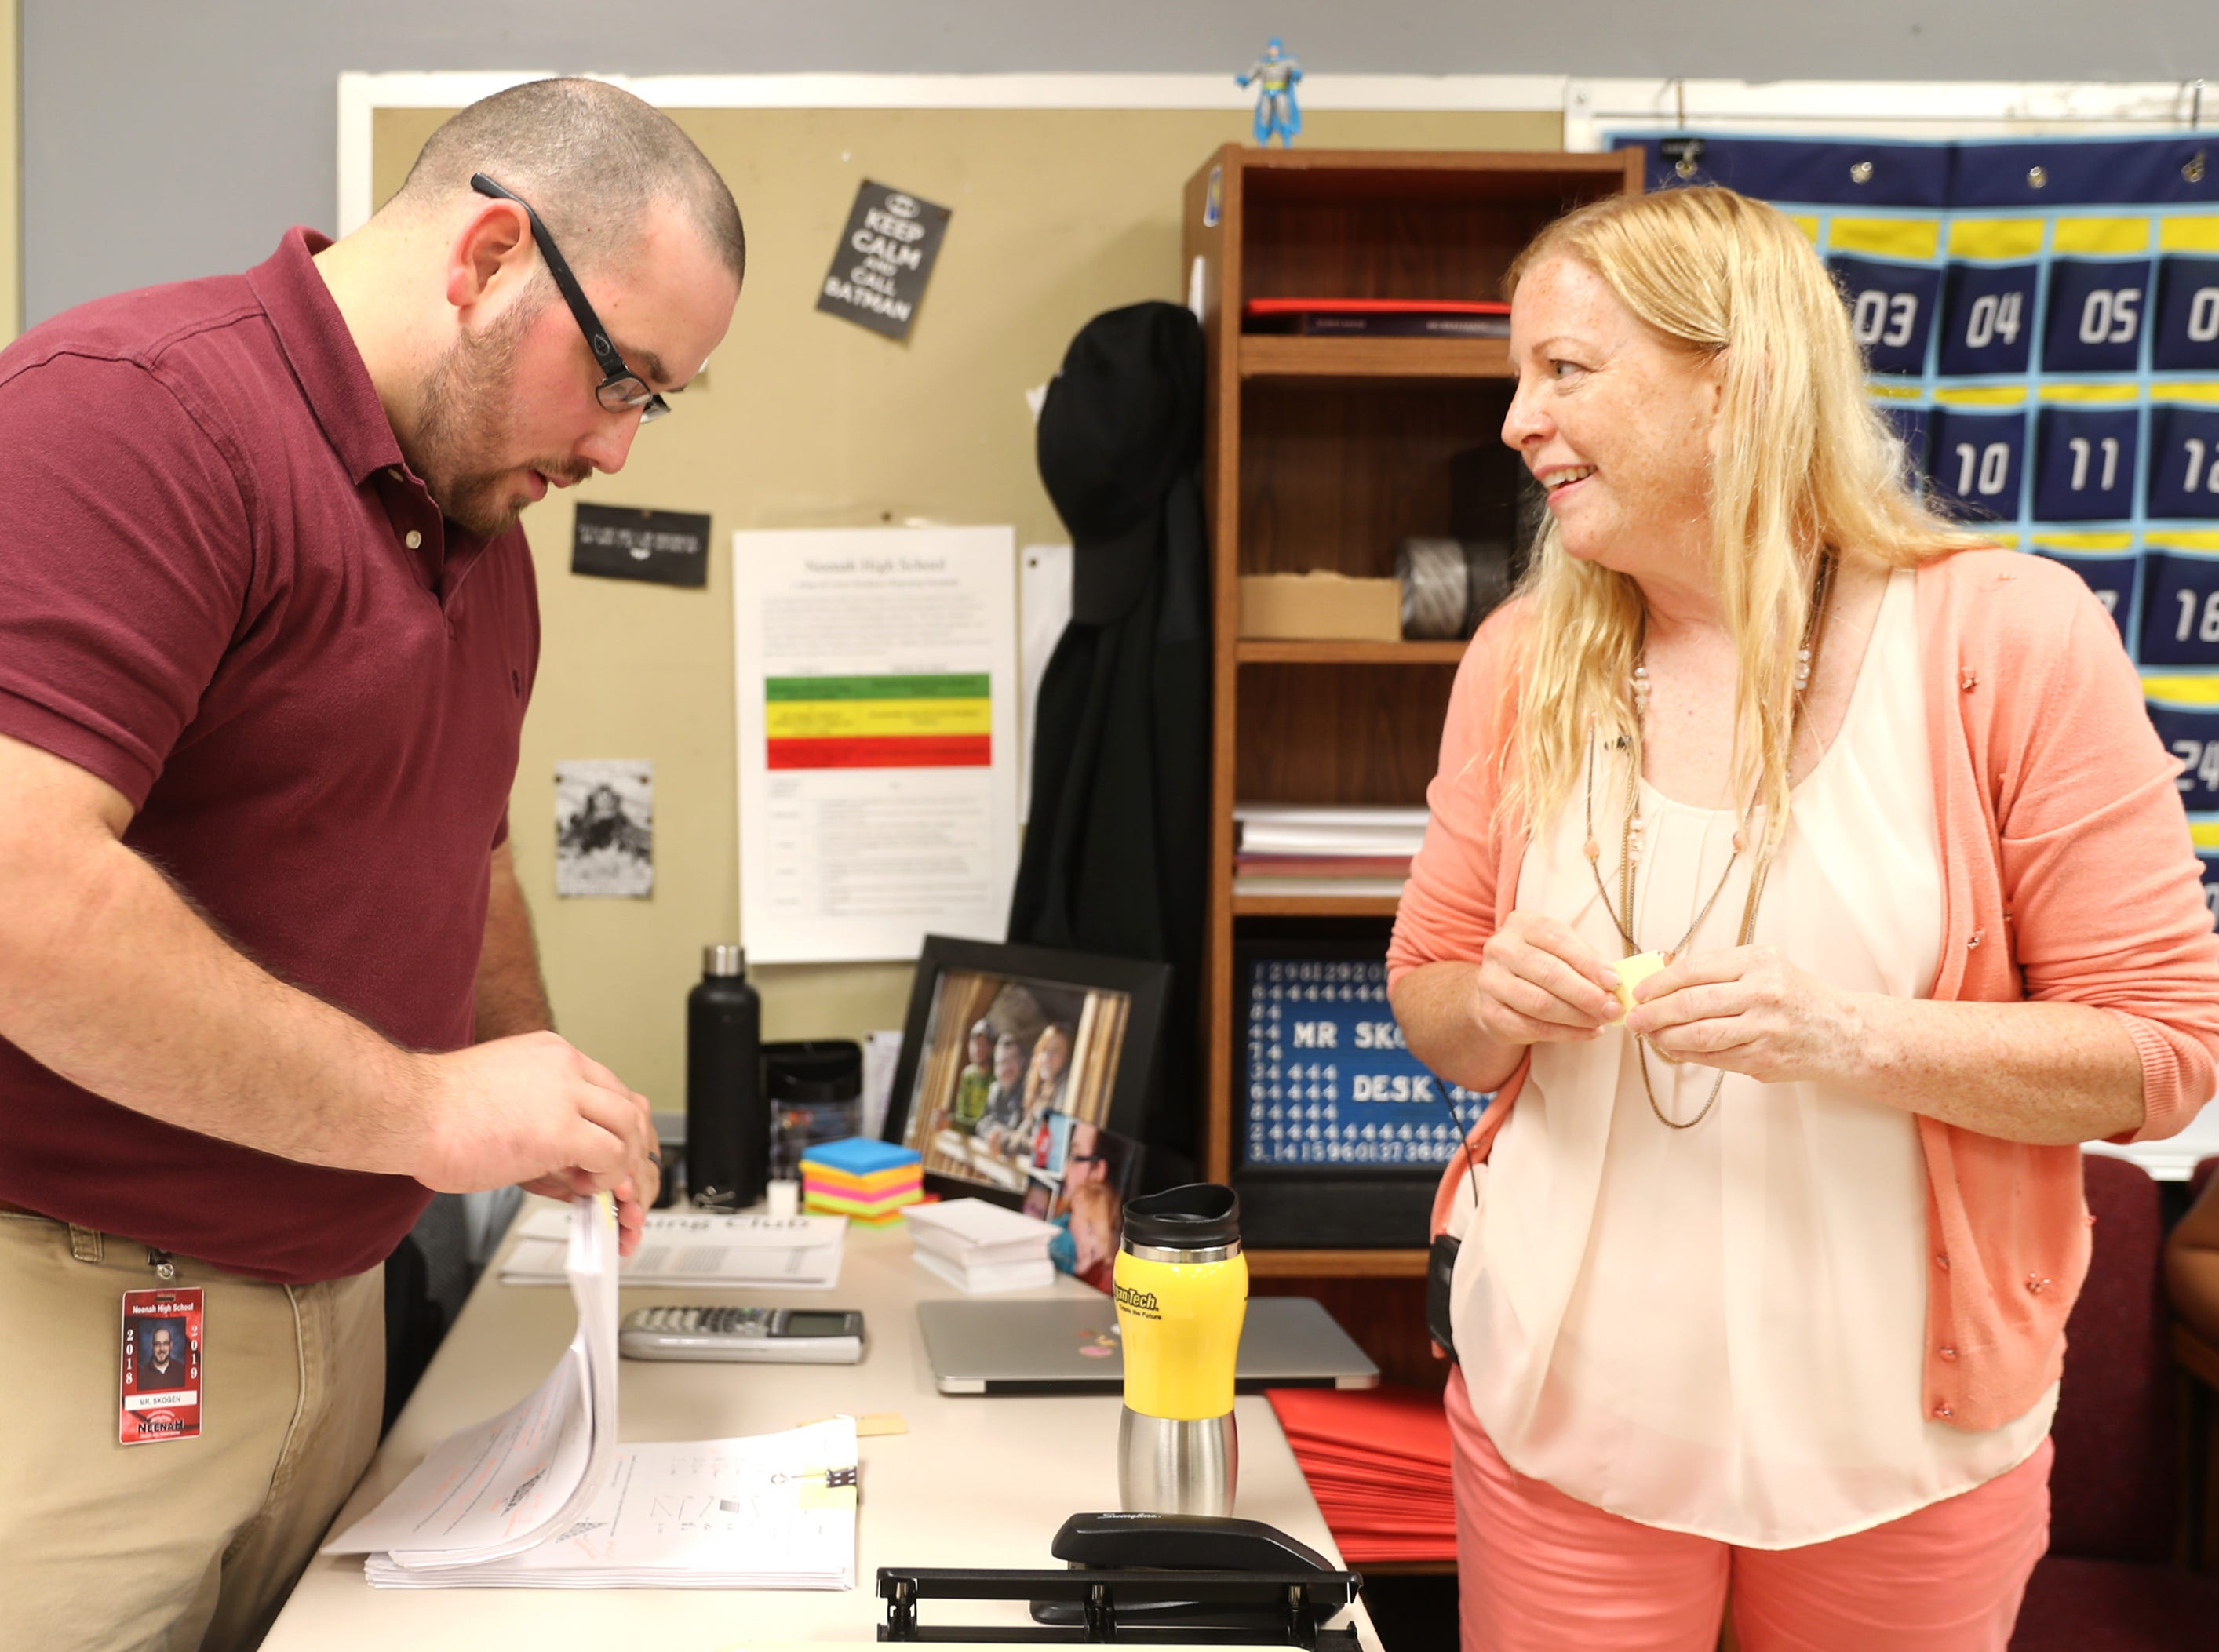 Chris Skogen, a math teacher at Neenah High School, prepares a stack of tests with Maripat Franke, a special education teacher currently enrolled in the Residency In Teacher Education 2.0 program at CESA 6, Monday, Sept. 17, 2018, in Neenah, Wis. Skogen and Franke co-teach the class.